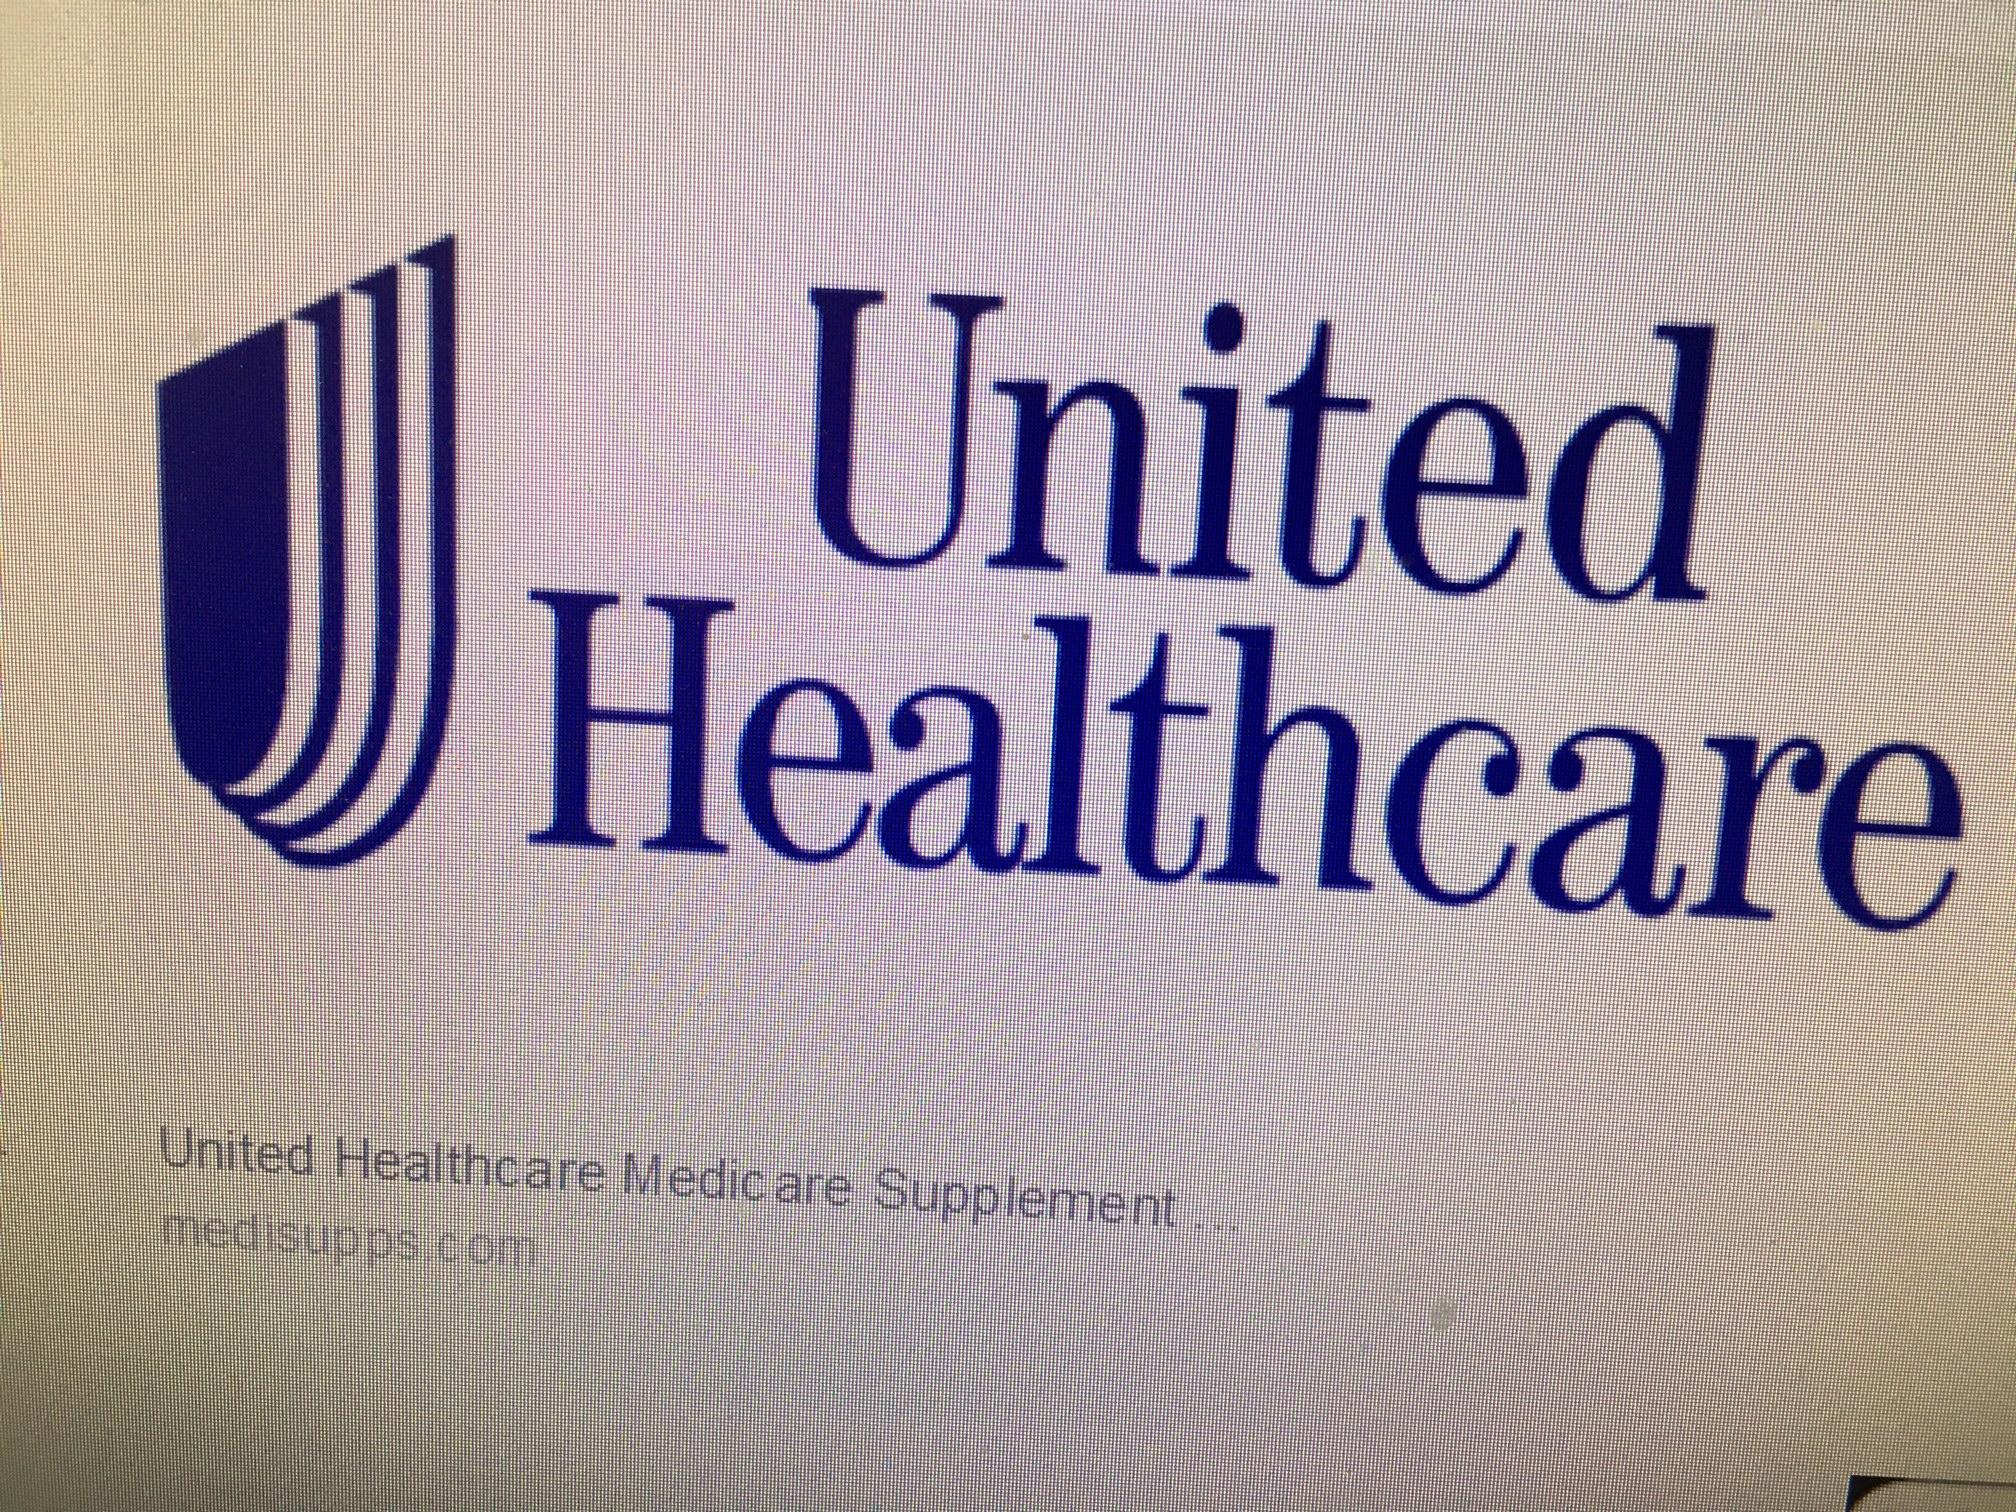 Haywood Regional Medical Center and United Healthcare failed to meet a Jan. 1 deadline for an agreement. (Photo credit: WLOS staff)